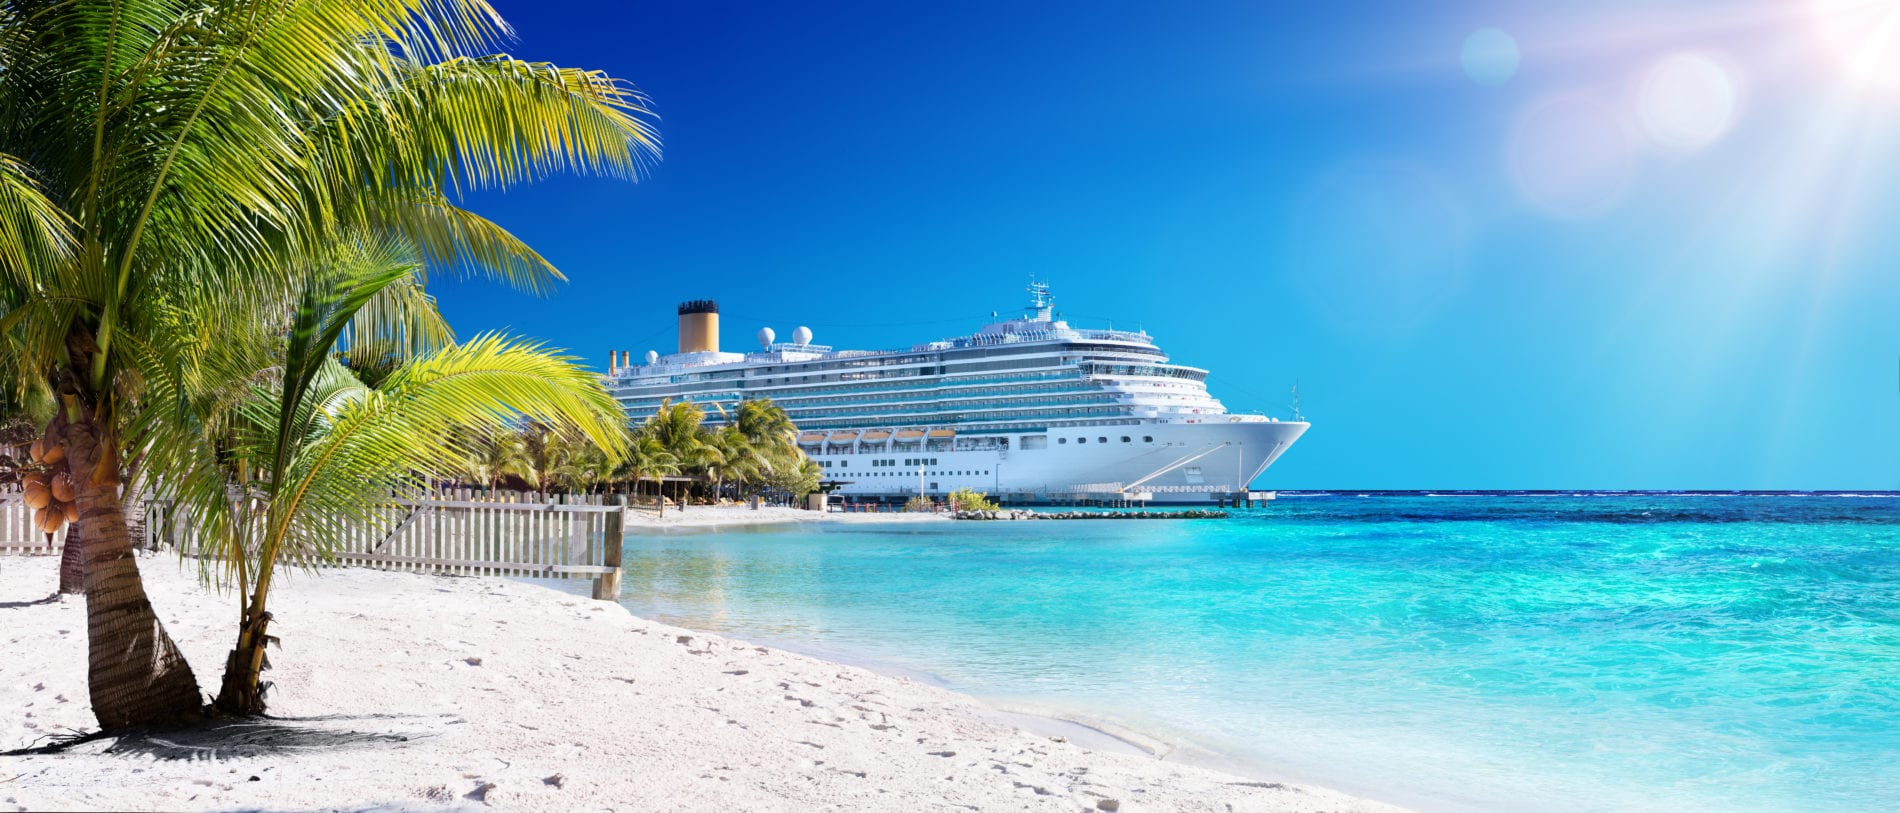 Image result for cruise in caribbean